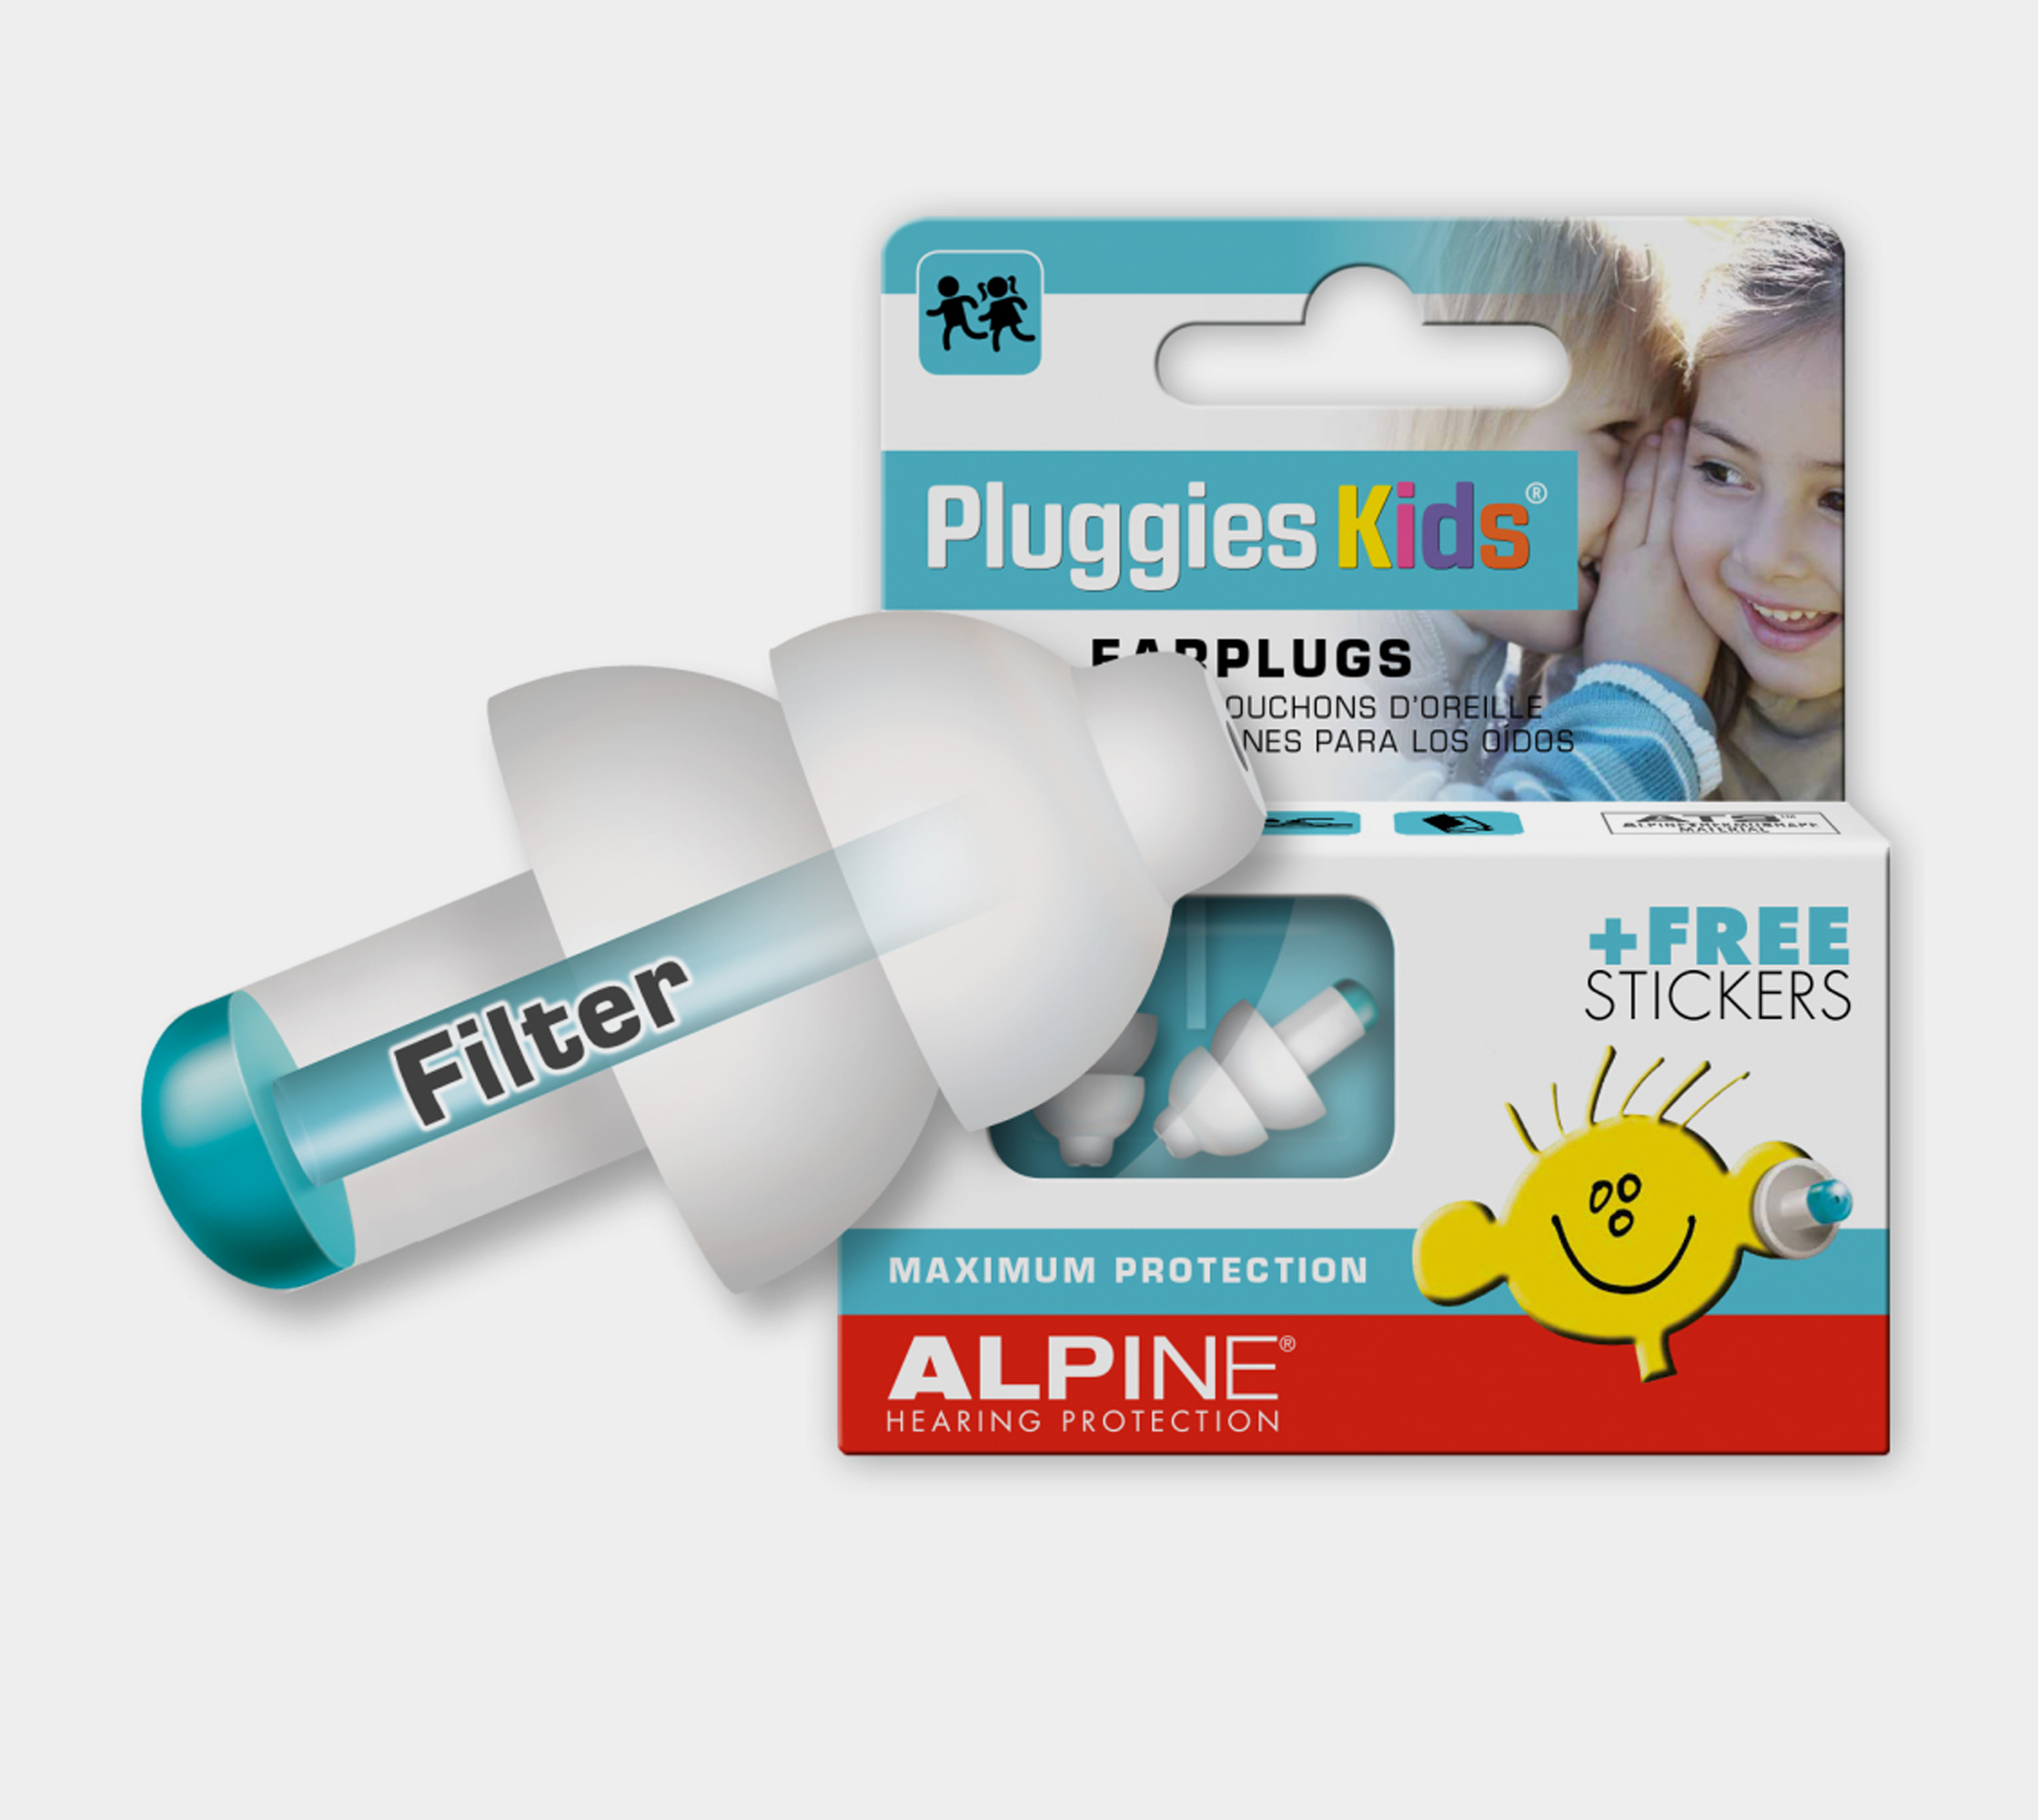 Alpine_Pluggies_Kids